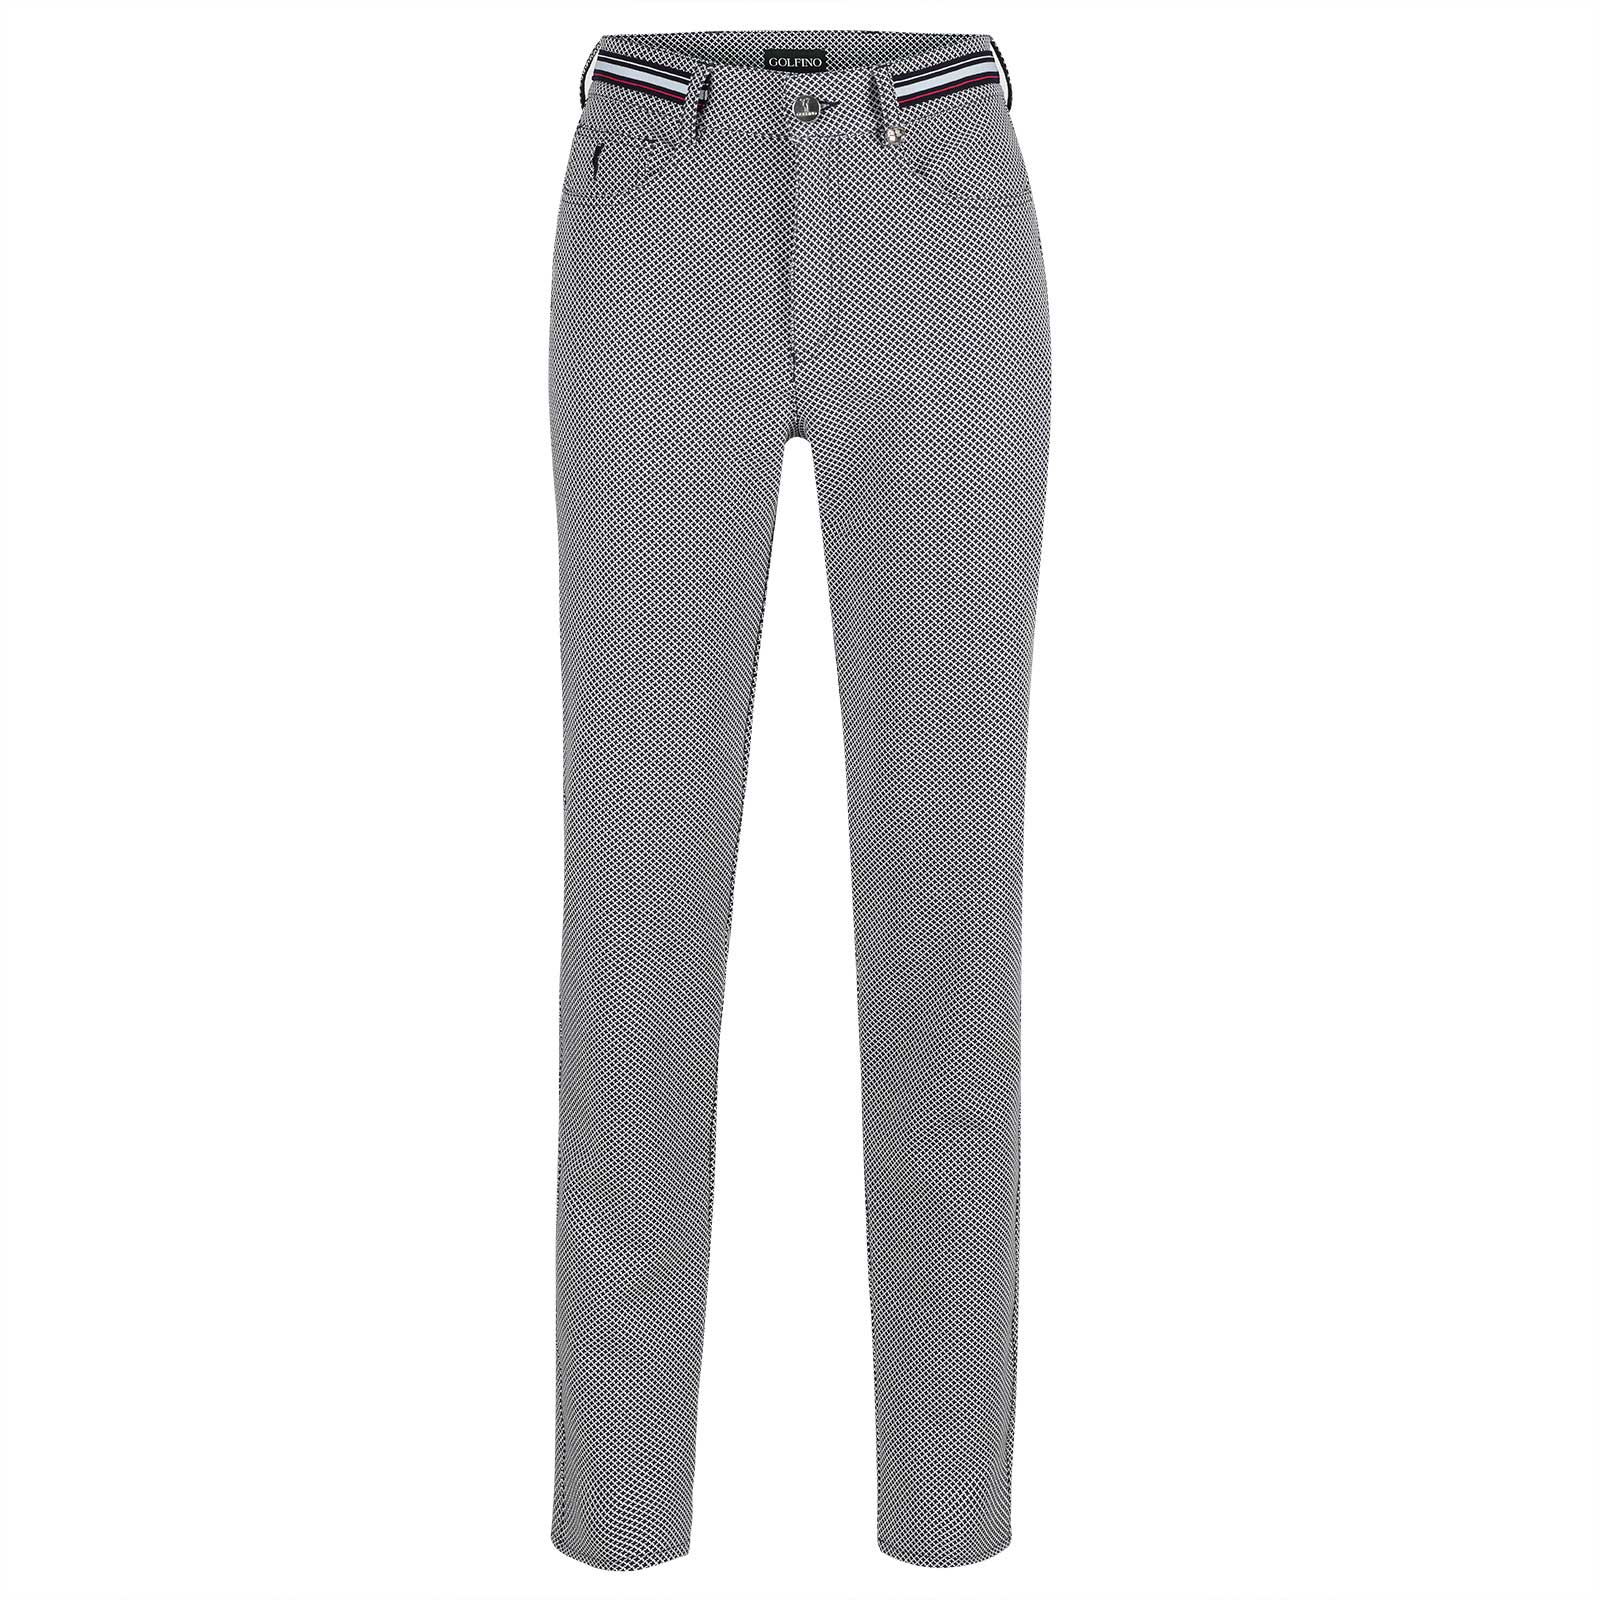 Ladies patterned 7/8 golf trousers with stretch function in 5-pocket style